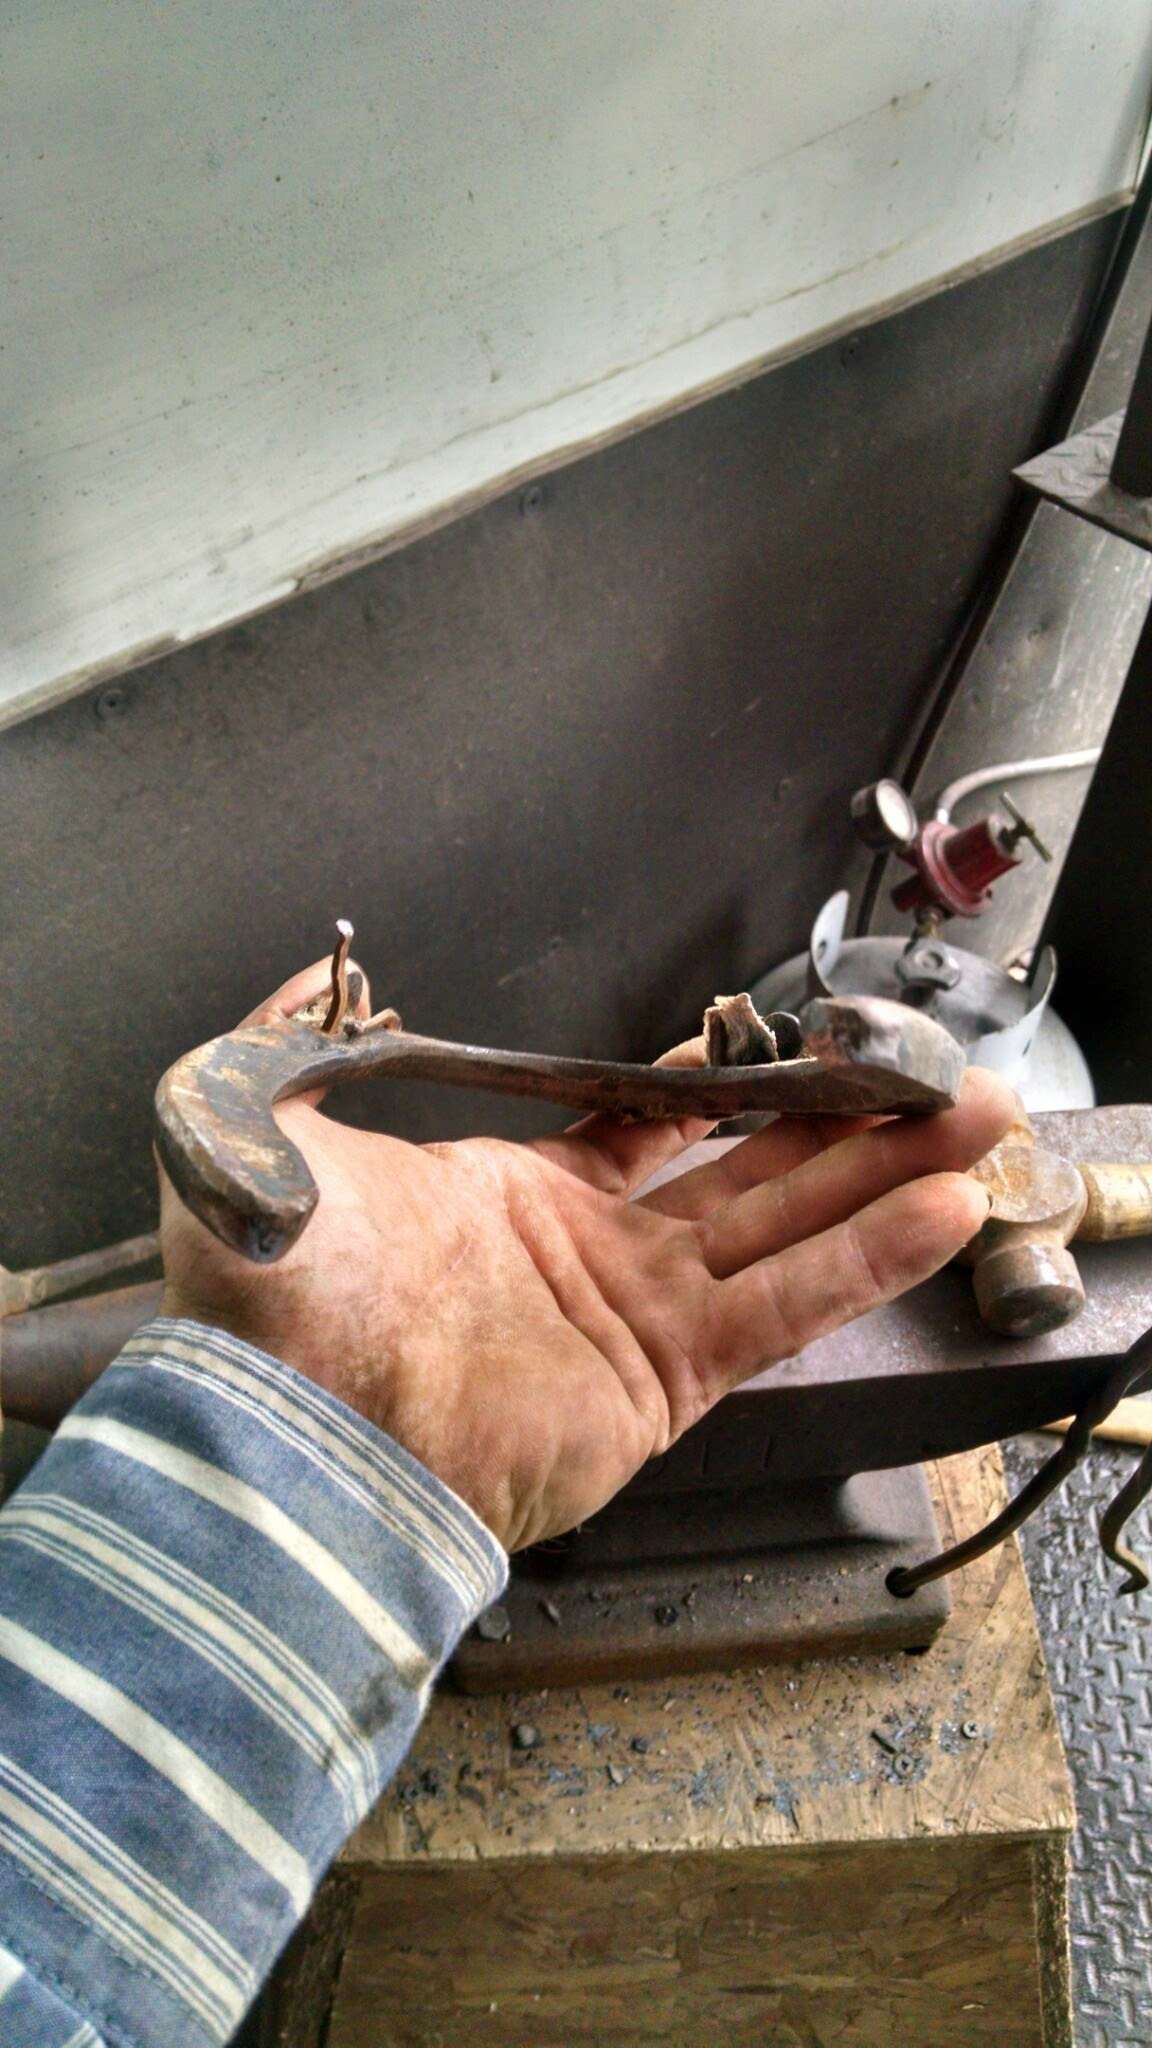 Lost Shoes – Dixie's Farrier Service